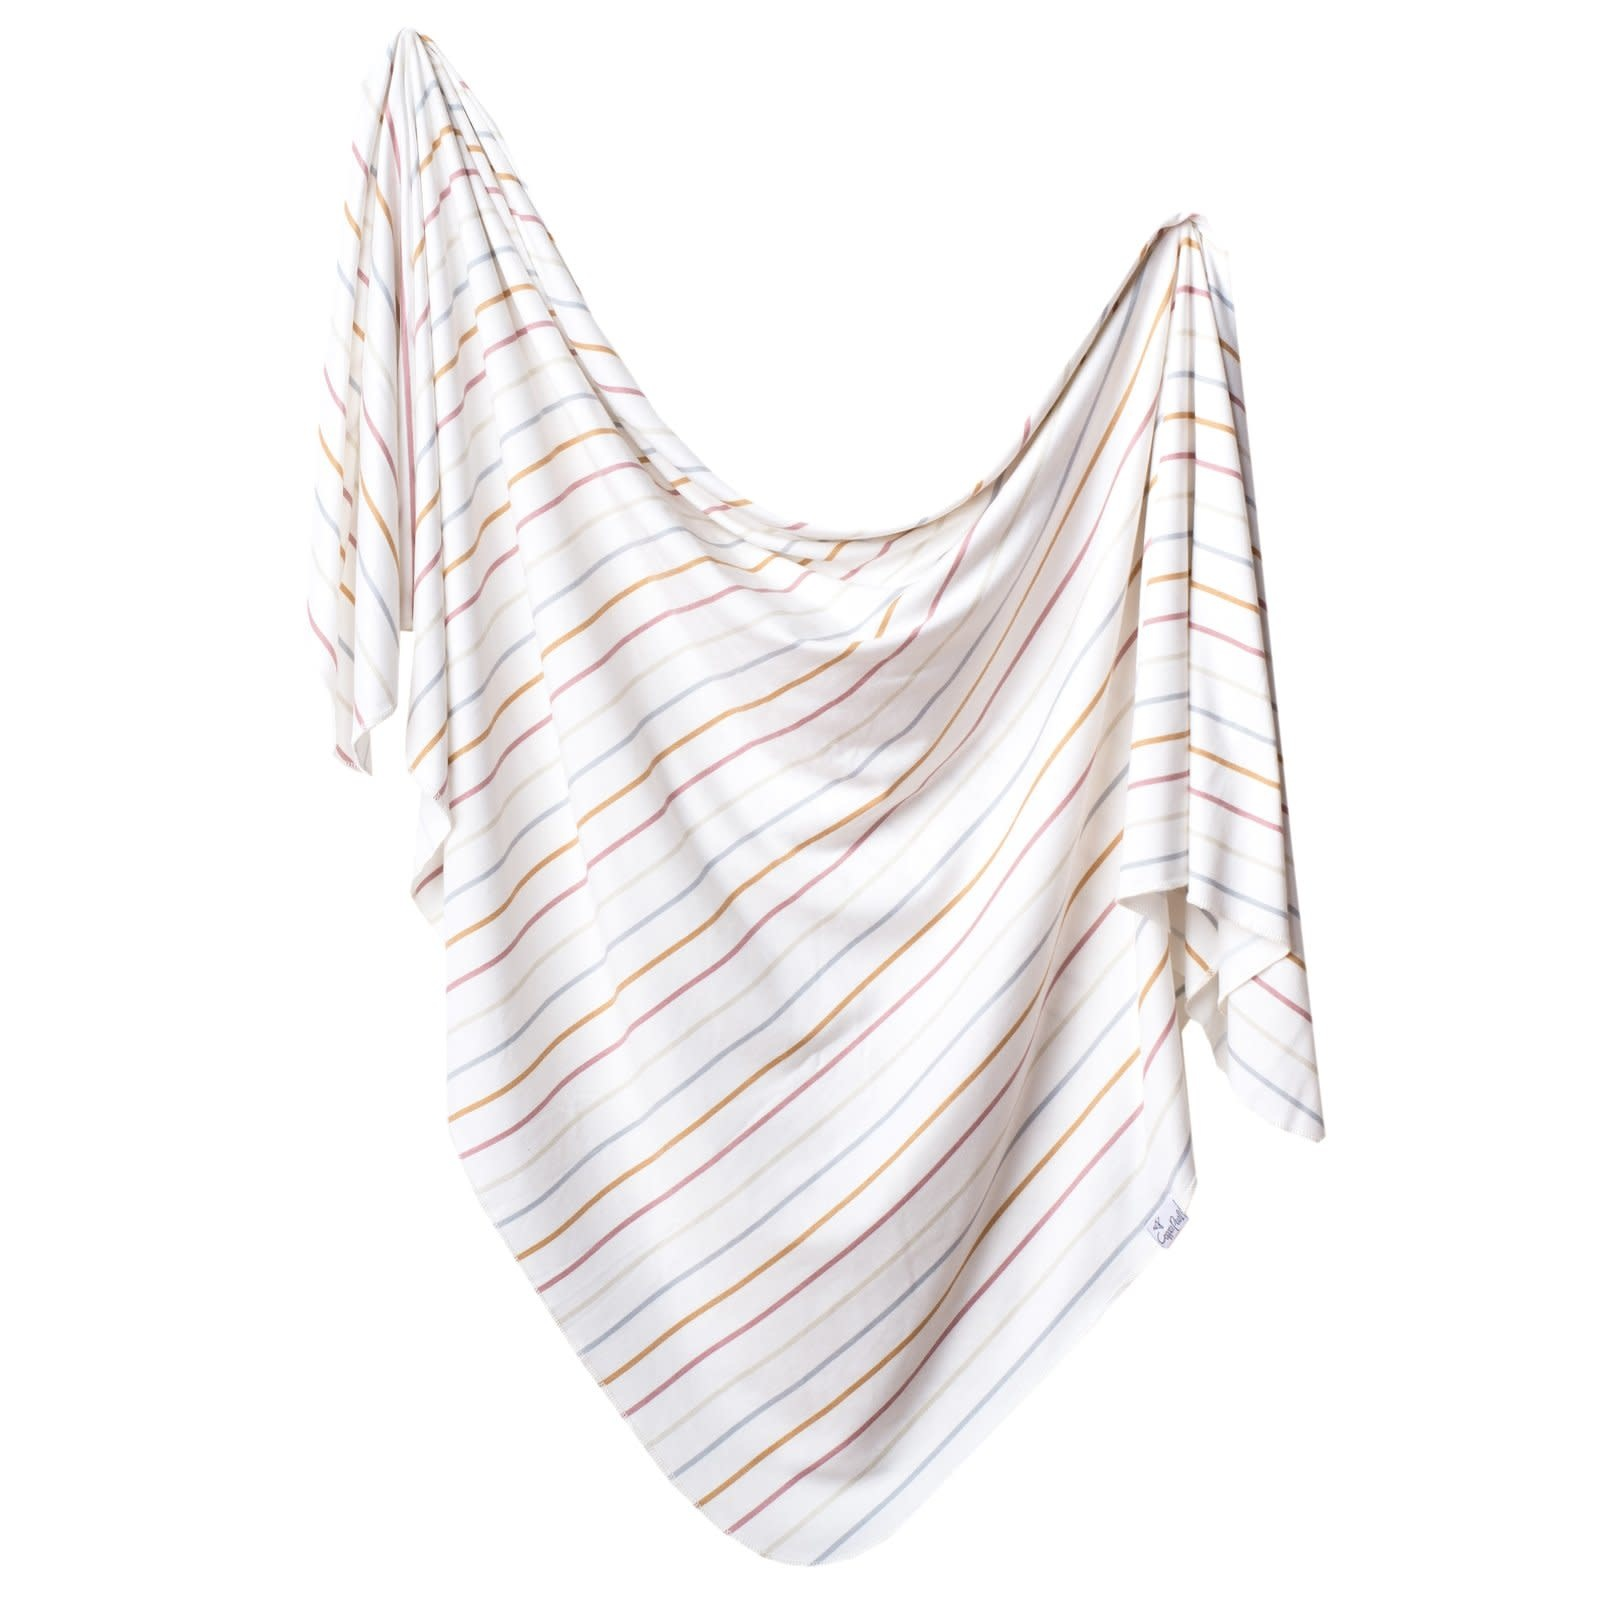 Copper Pearl Piper Swaddle Blanket